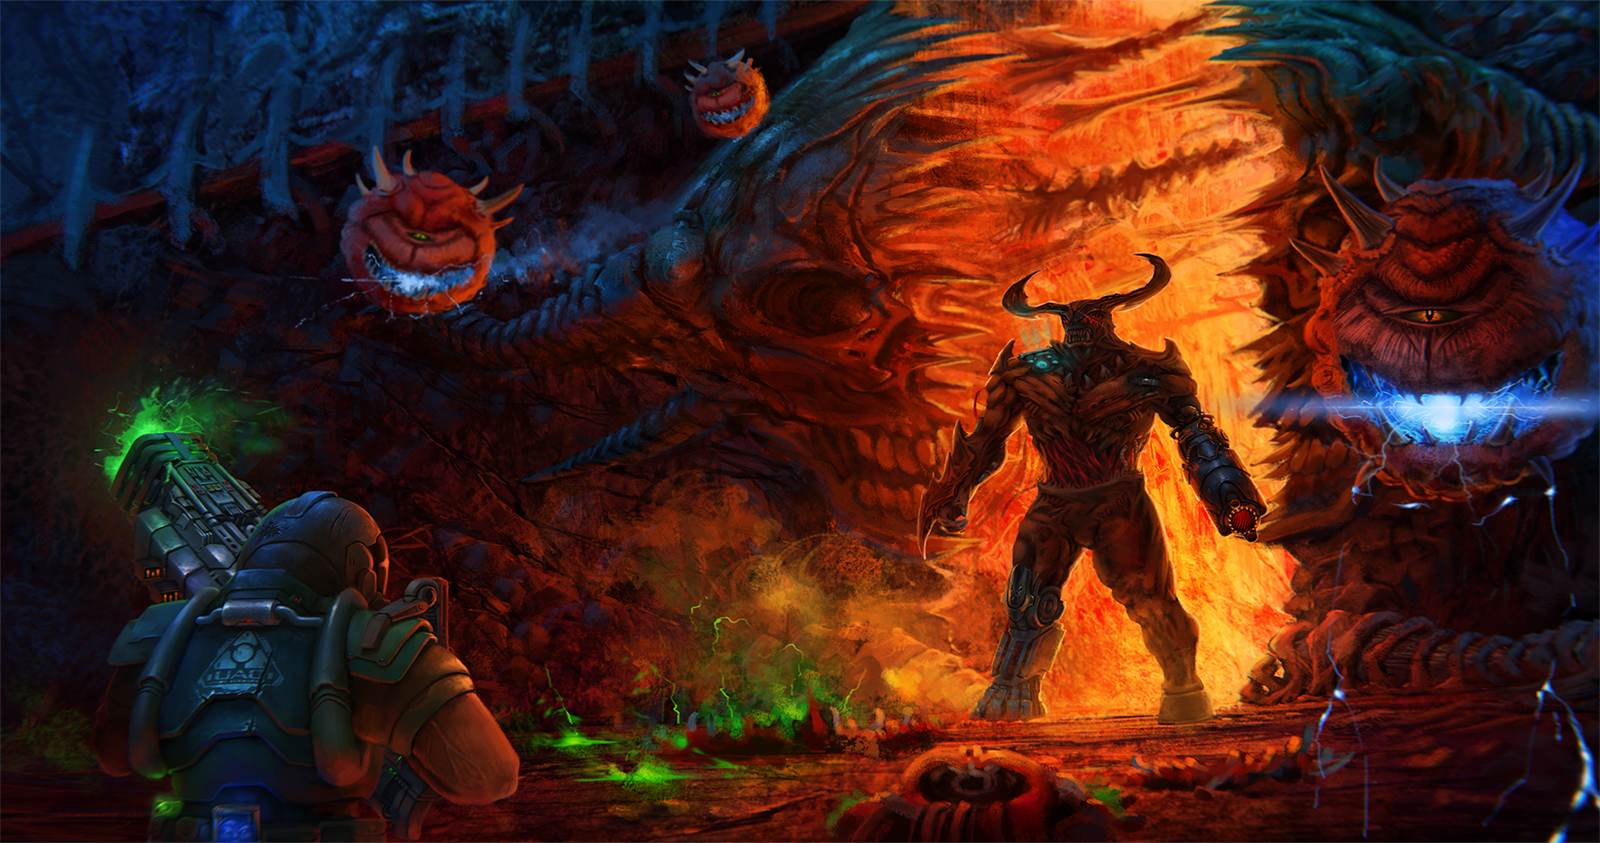 doom_guy_invasion_by_tacihon-d87ytvg